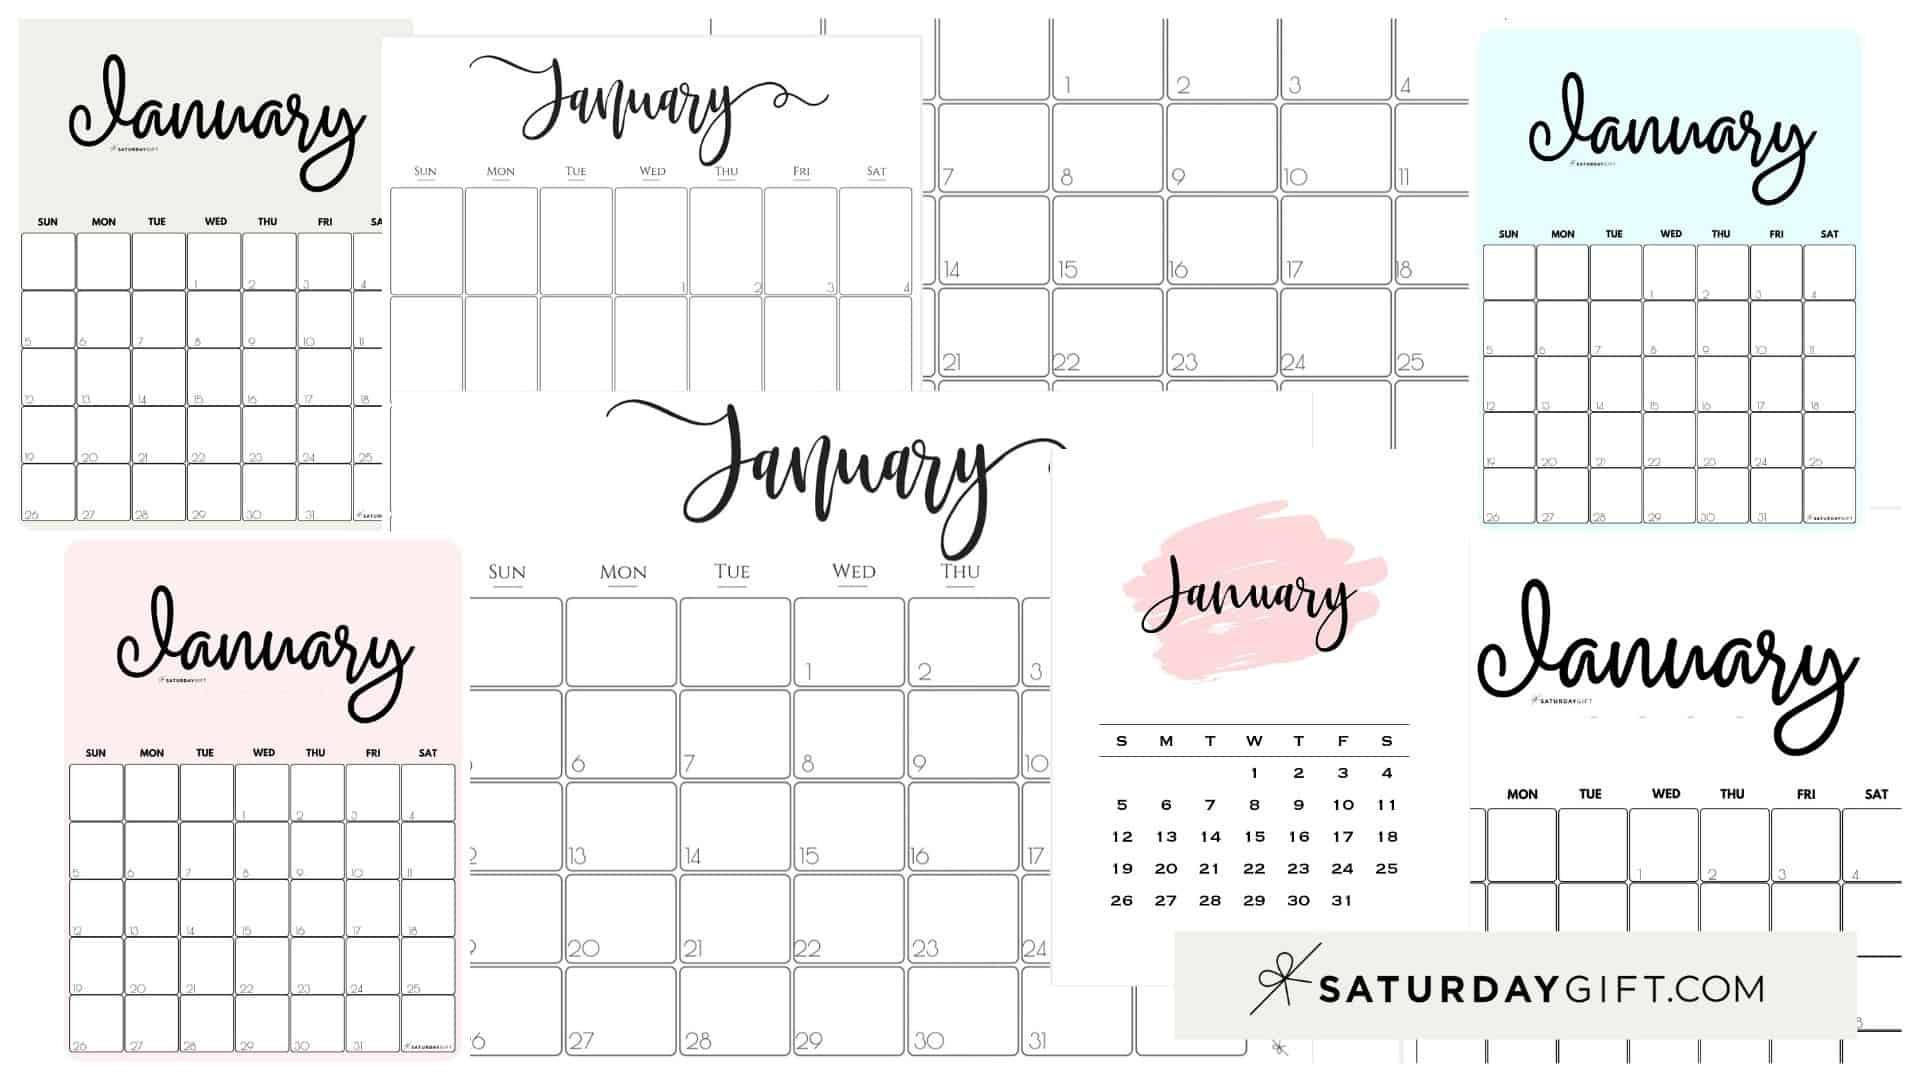 Calendar Template January 2021 Cute (& Free!) Printable January 2021 Calendar | SaturdayGift